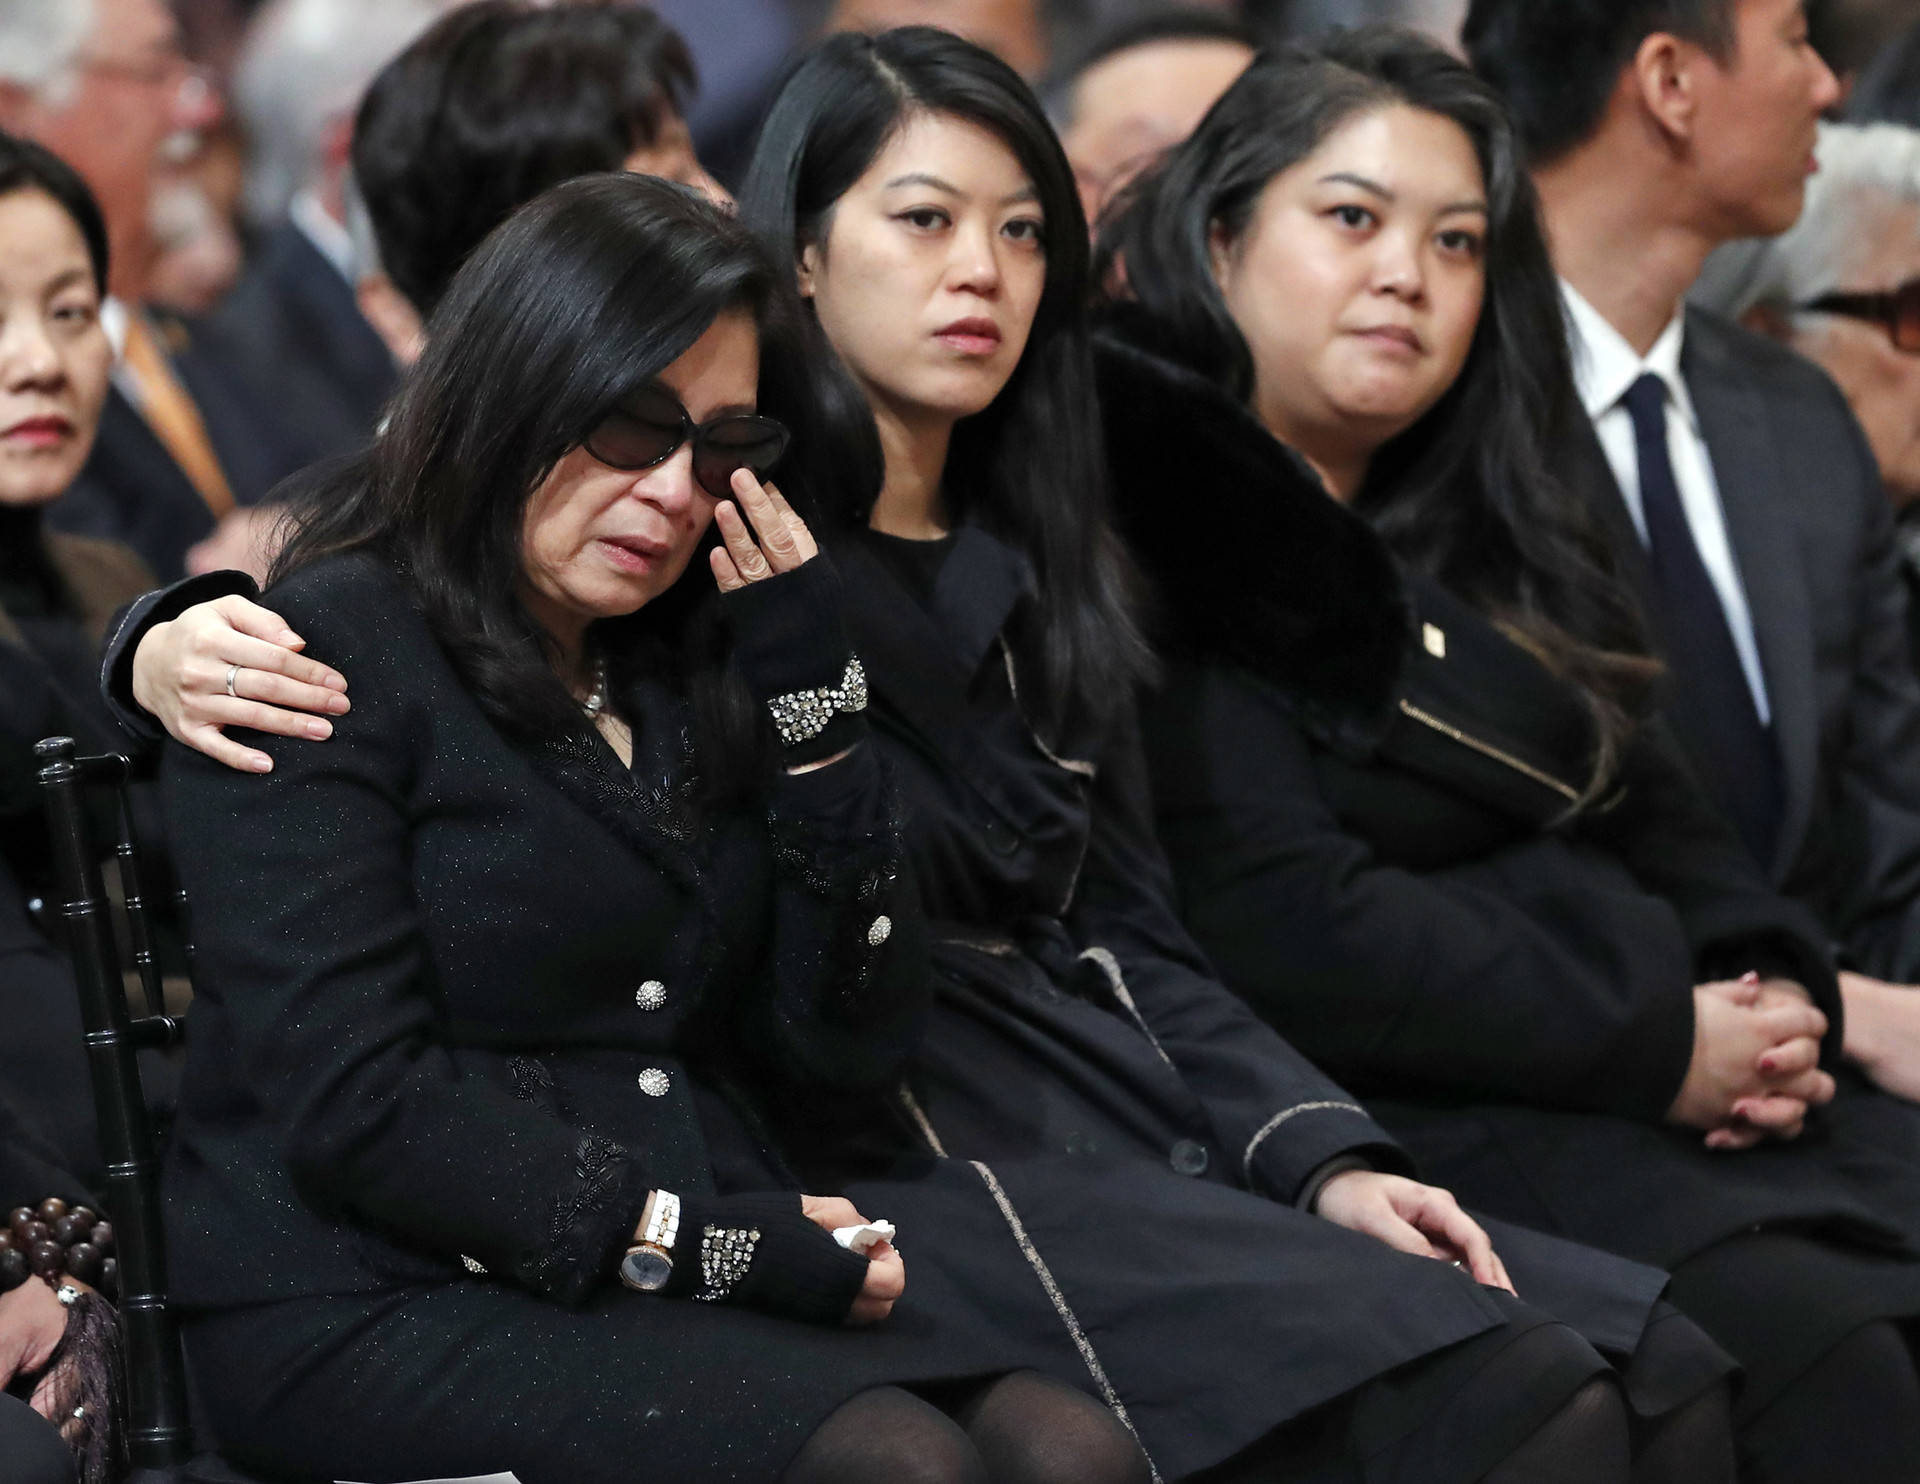 Anita Lee and her daughters, Brianna and Tania, during a service Celebrating the Life of Mayor Edwin M. Lee at San Francisco City Hall on Sunday, Dec. 17, 2017. Scott Strazzante/San Francisco Chronicle via AP, Pool